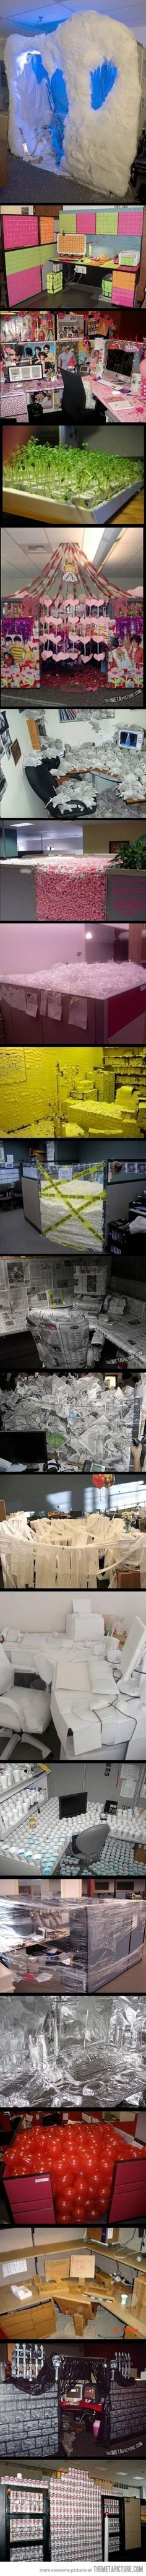 A collection of office pranks. It's a cube life hahaha